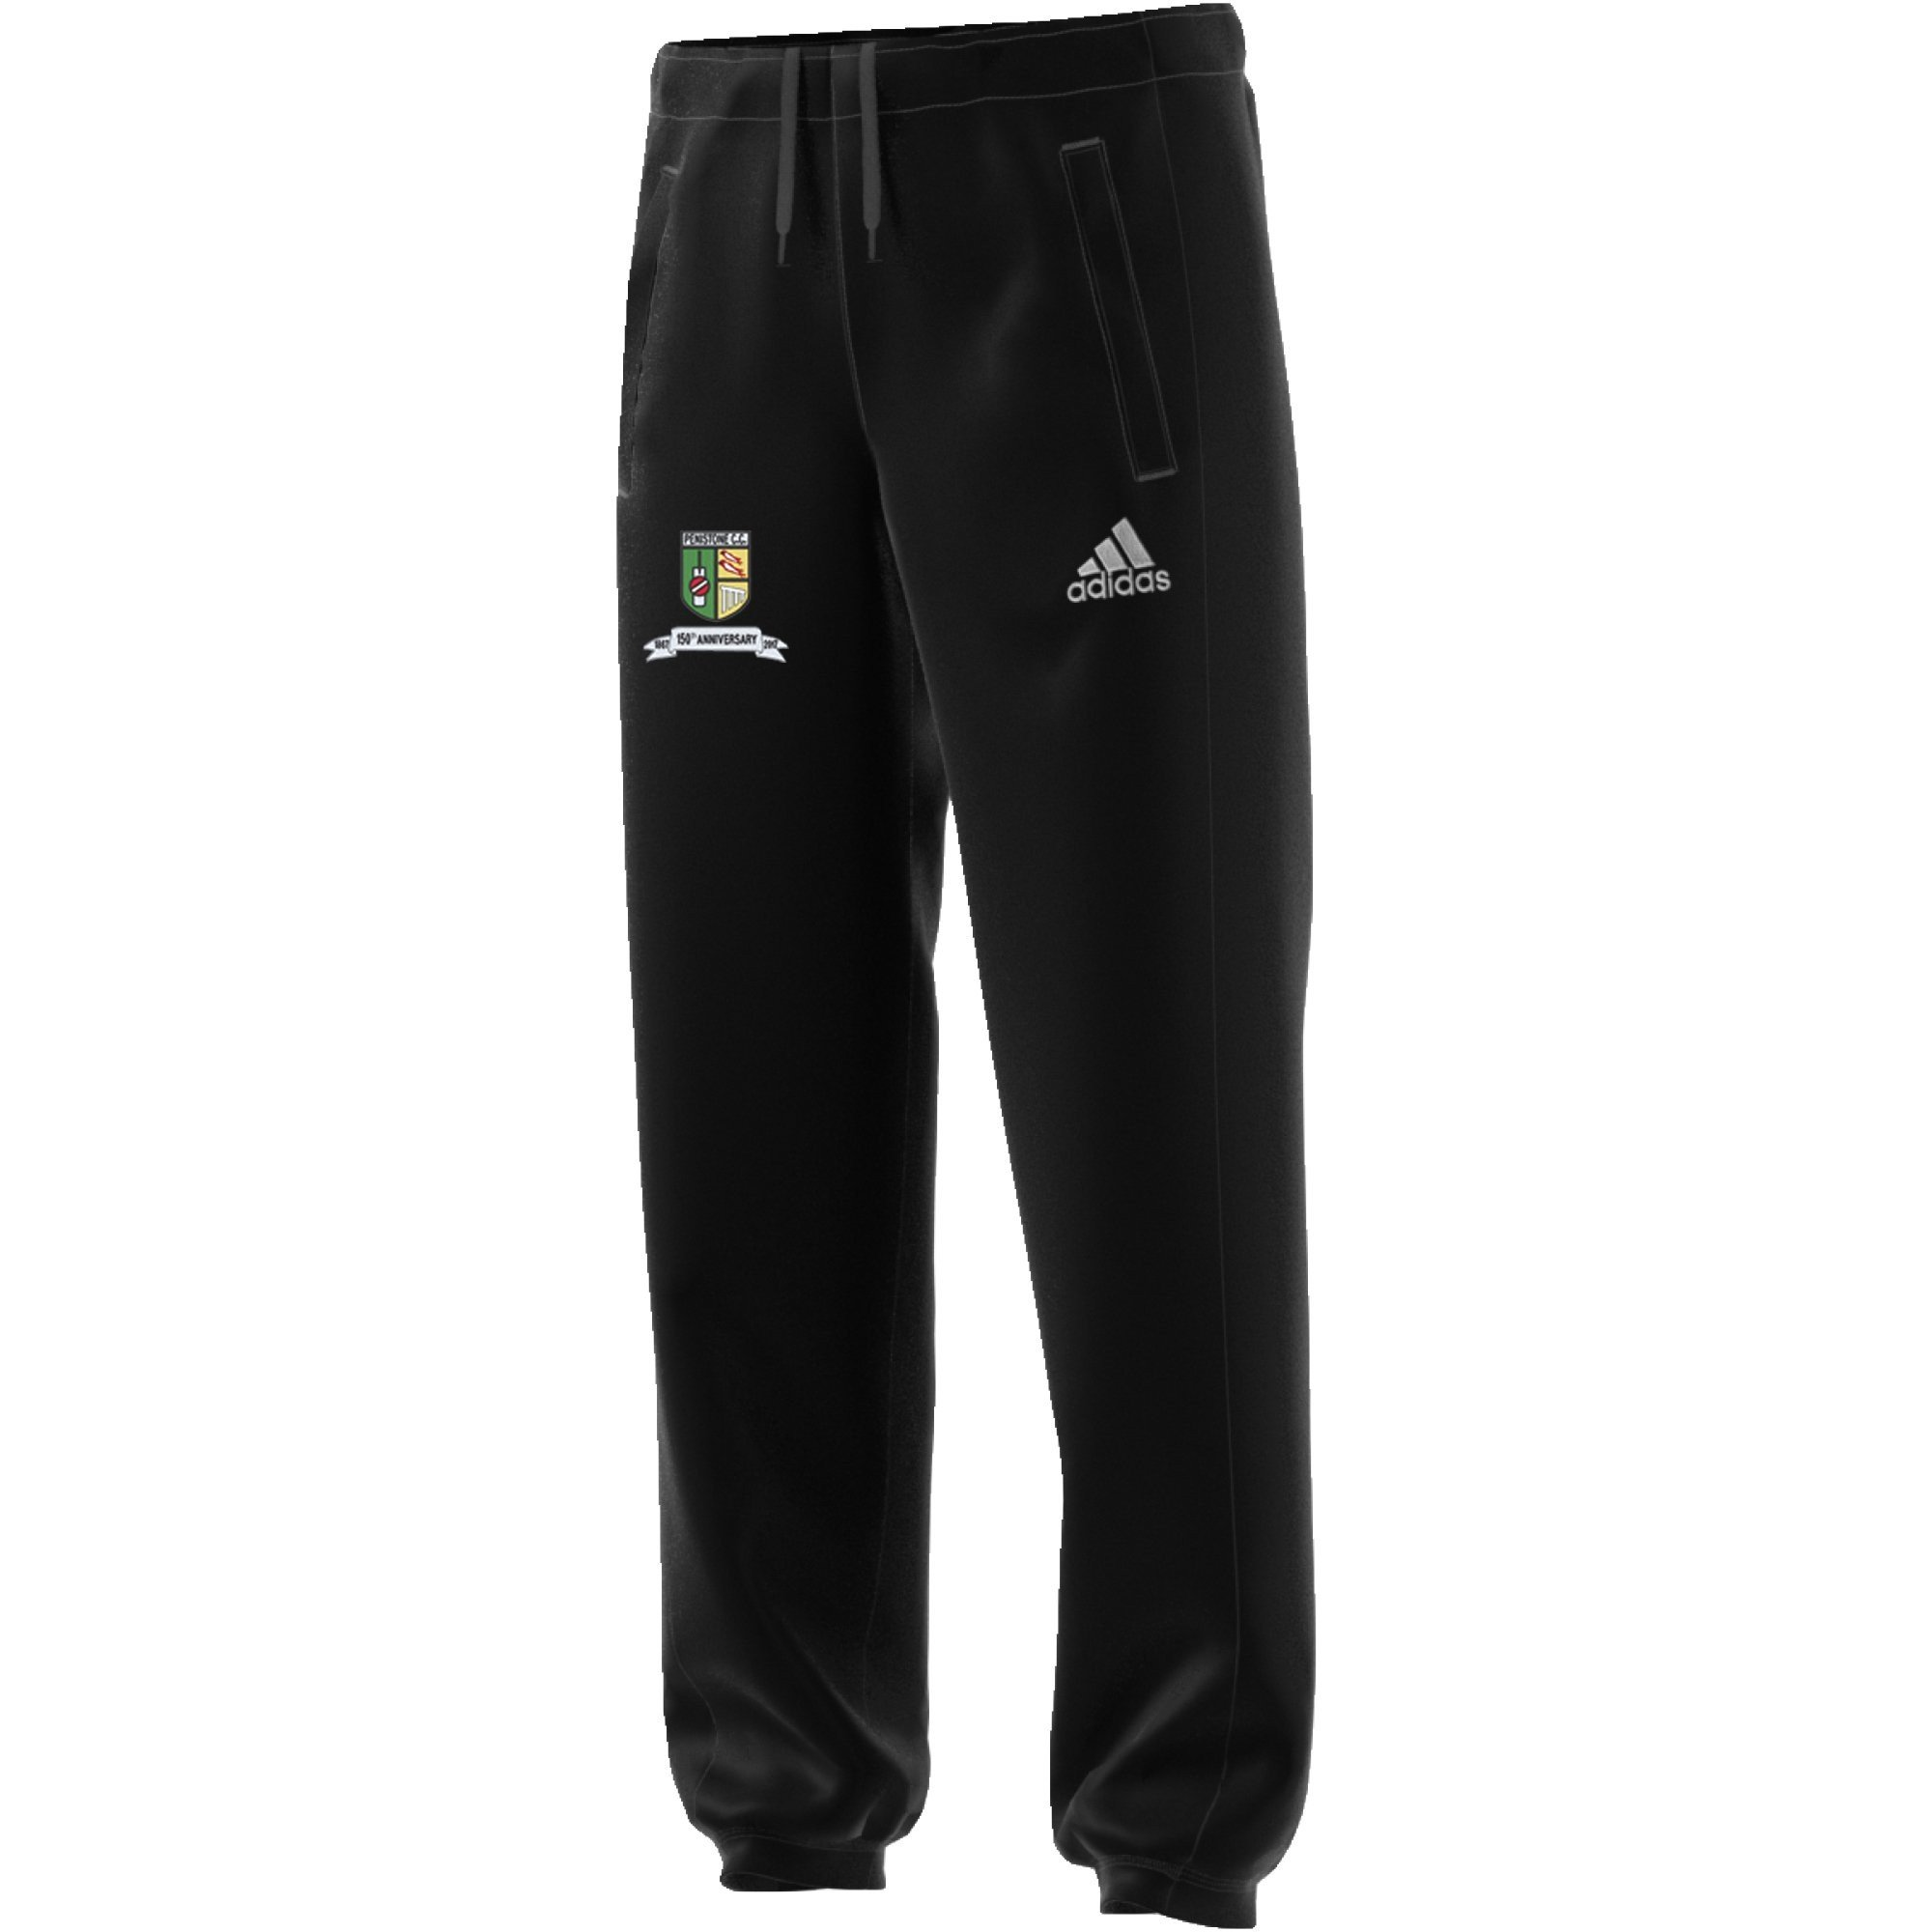 Penistone CC Anniversary Adidas Black Sweat Pants